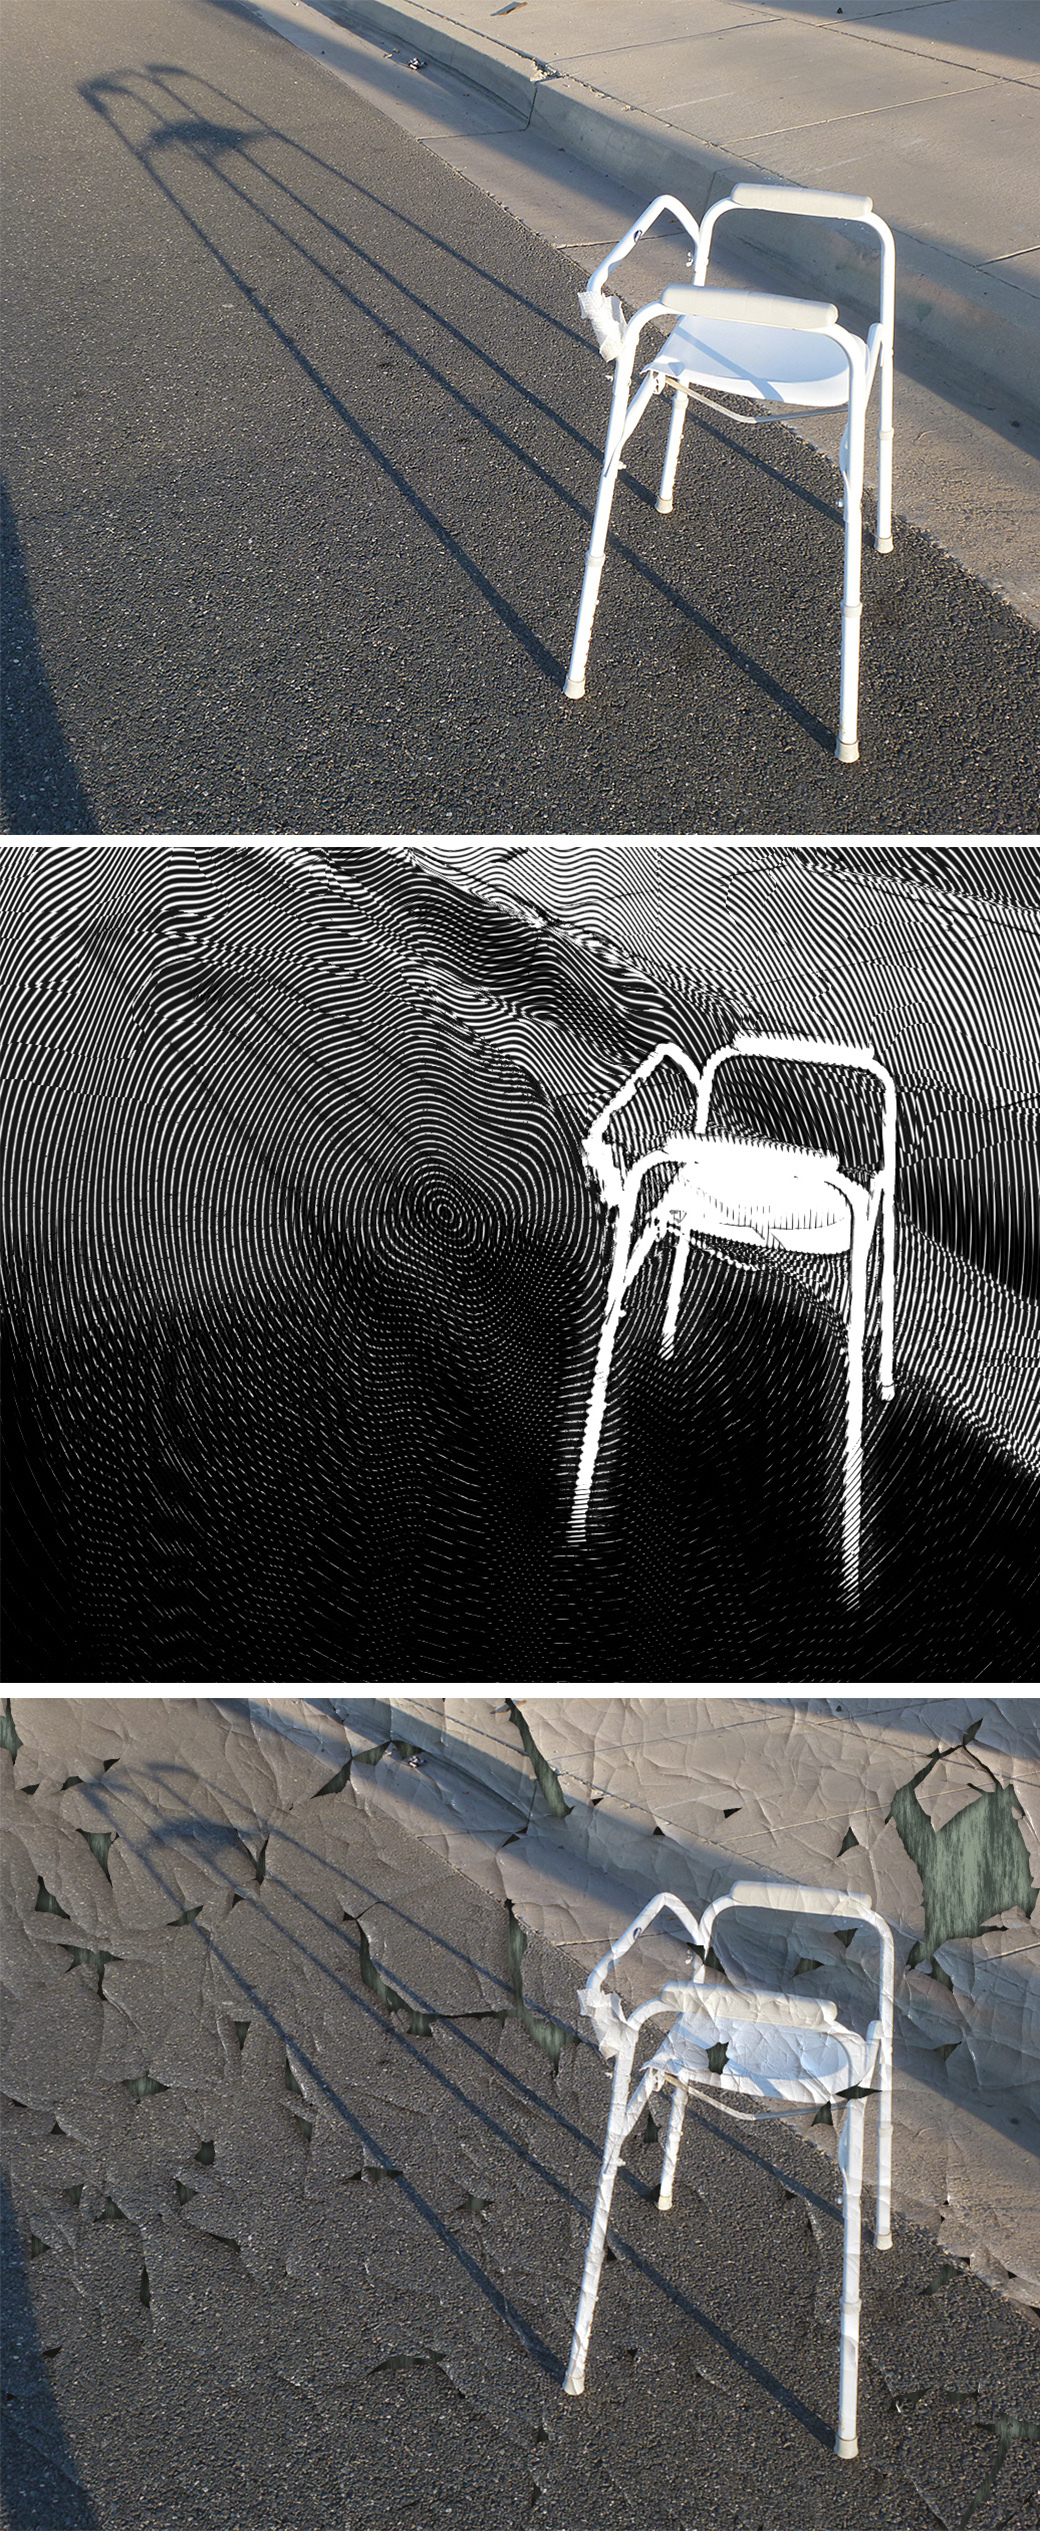 Abandoned chair - with variations